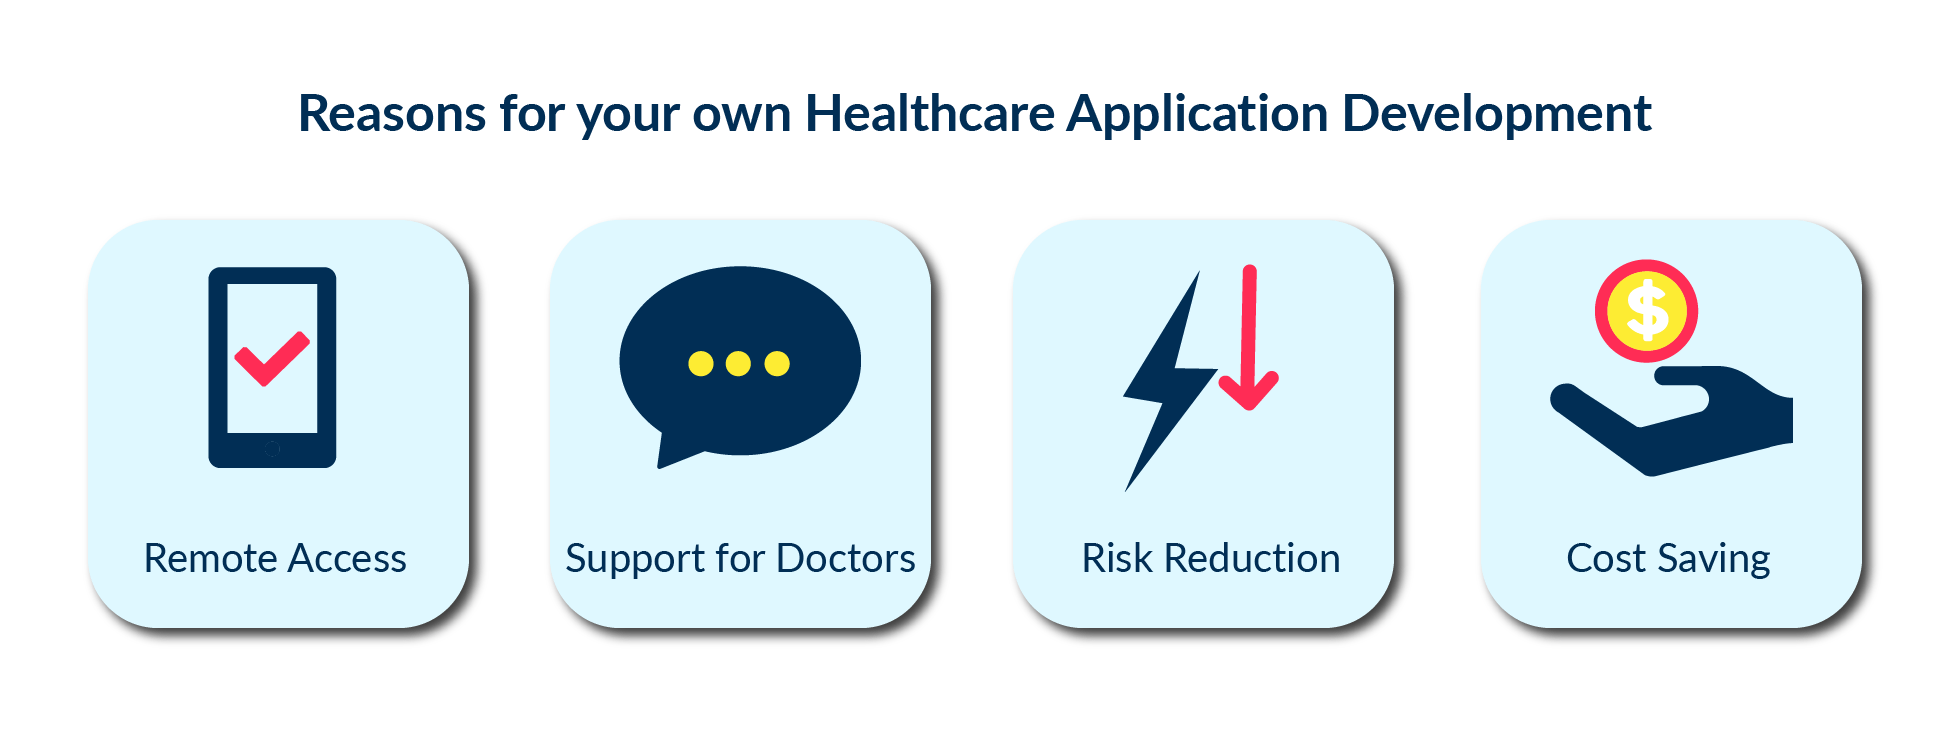 An illustration of top 4 reasons why medical entrepreneurs should consider development of the custom healthcare application.